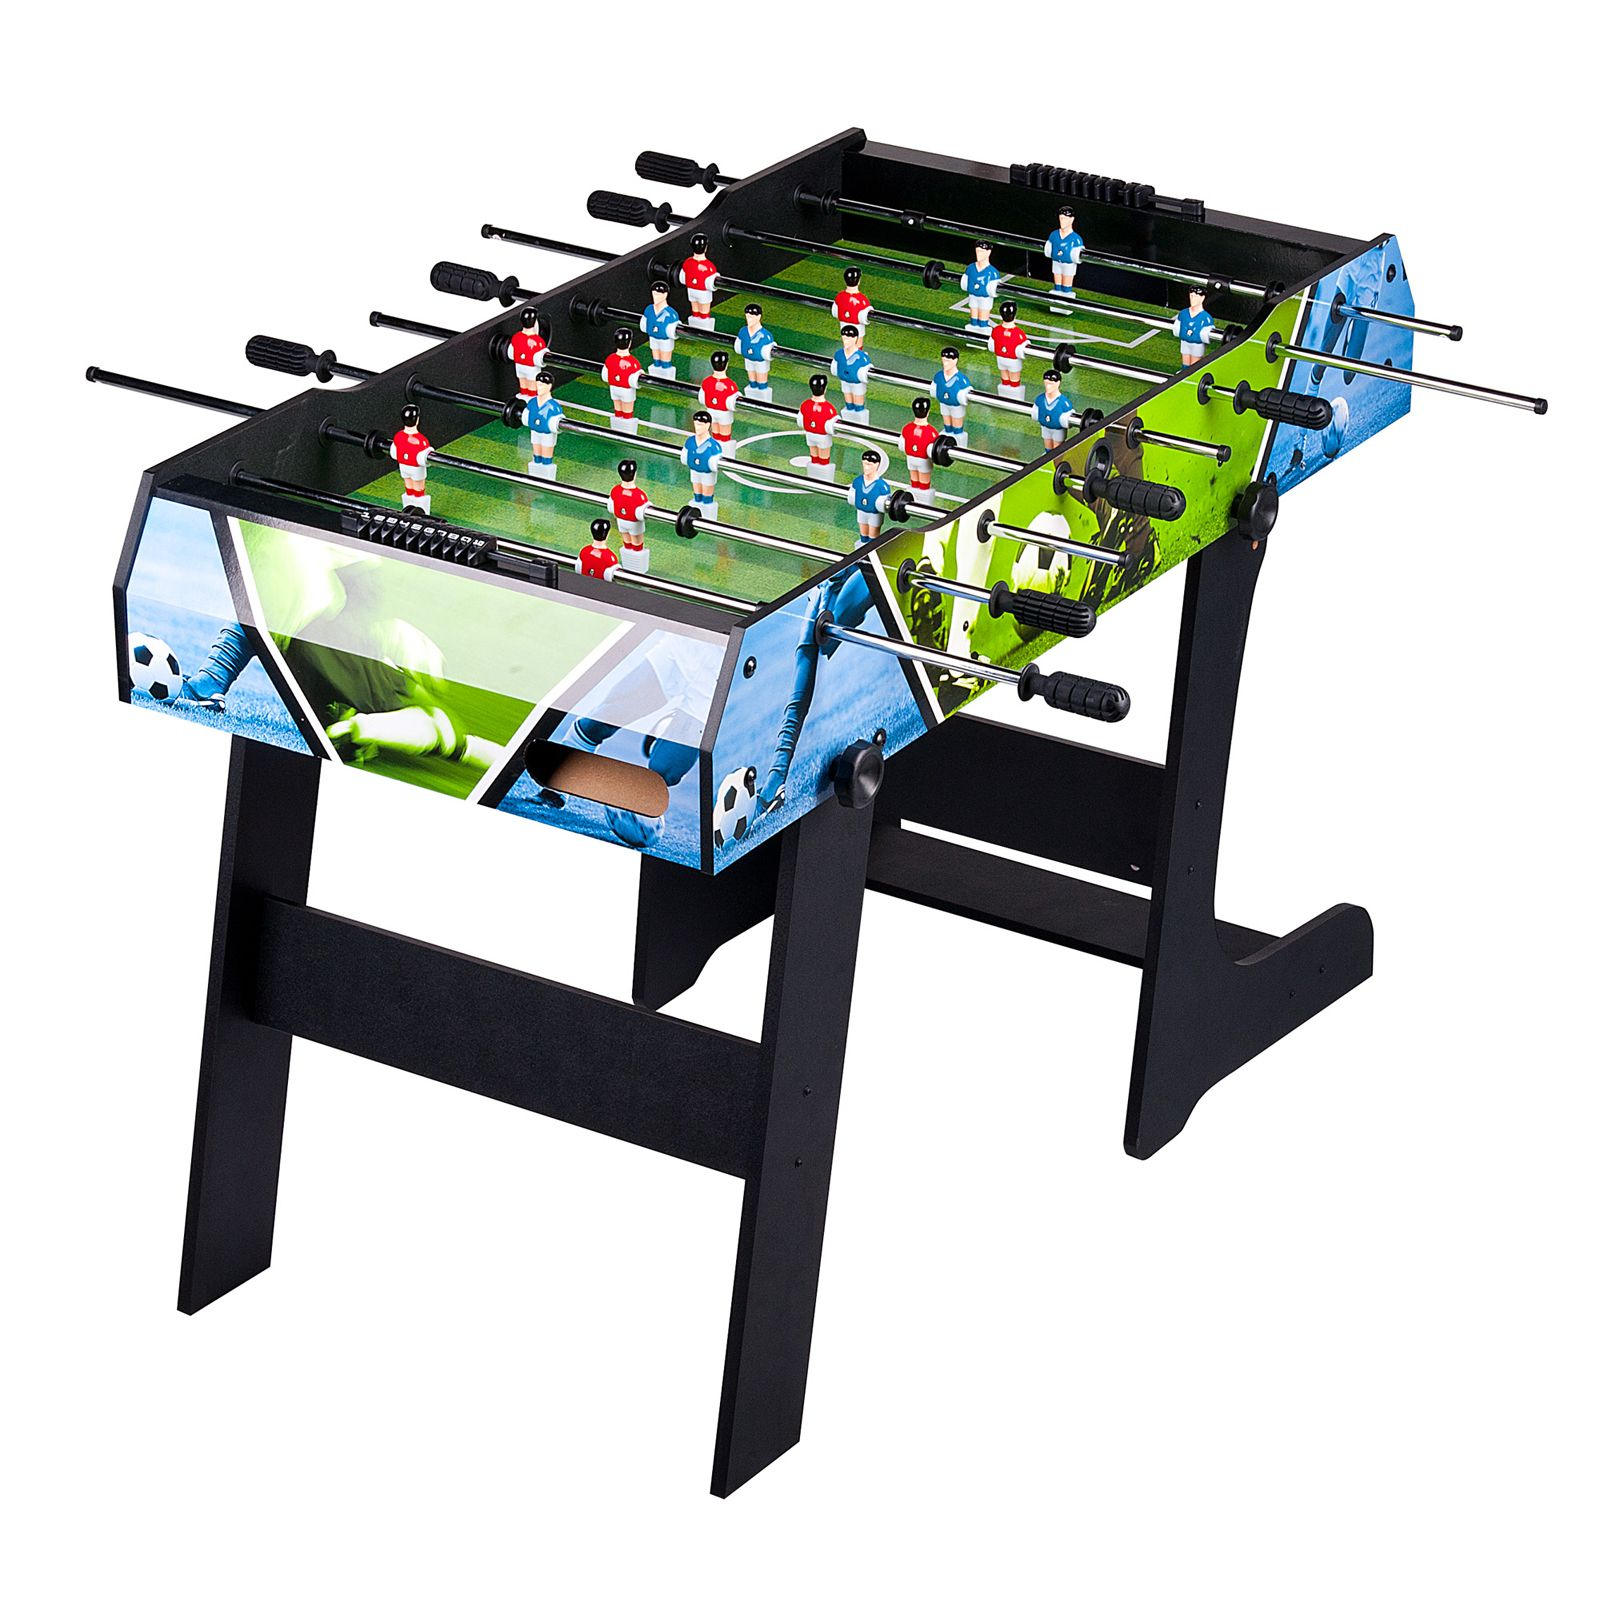 table football game online 2 player